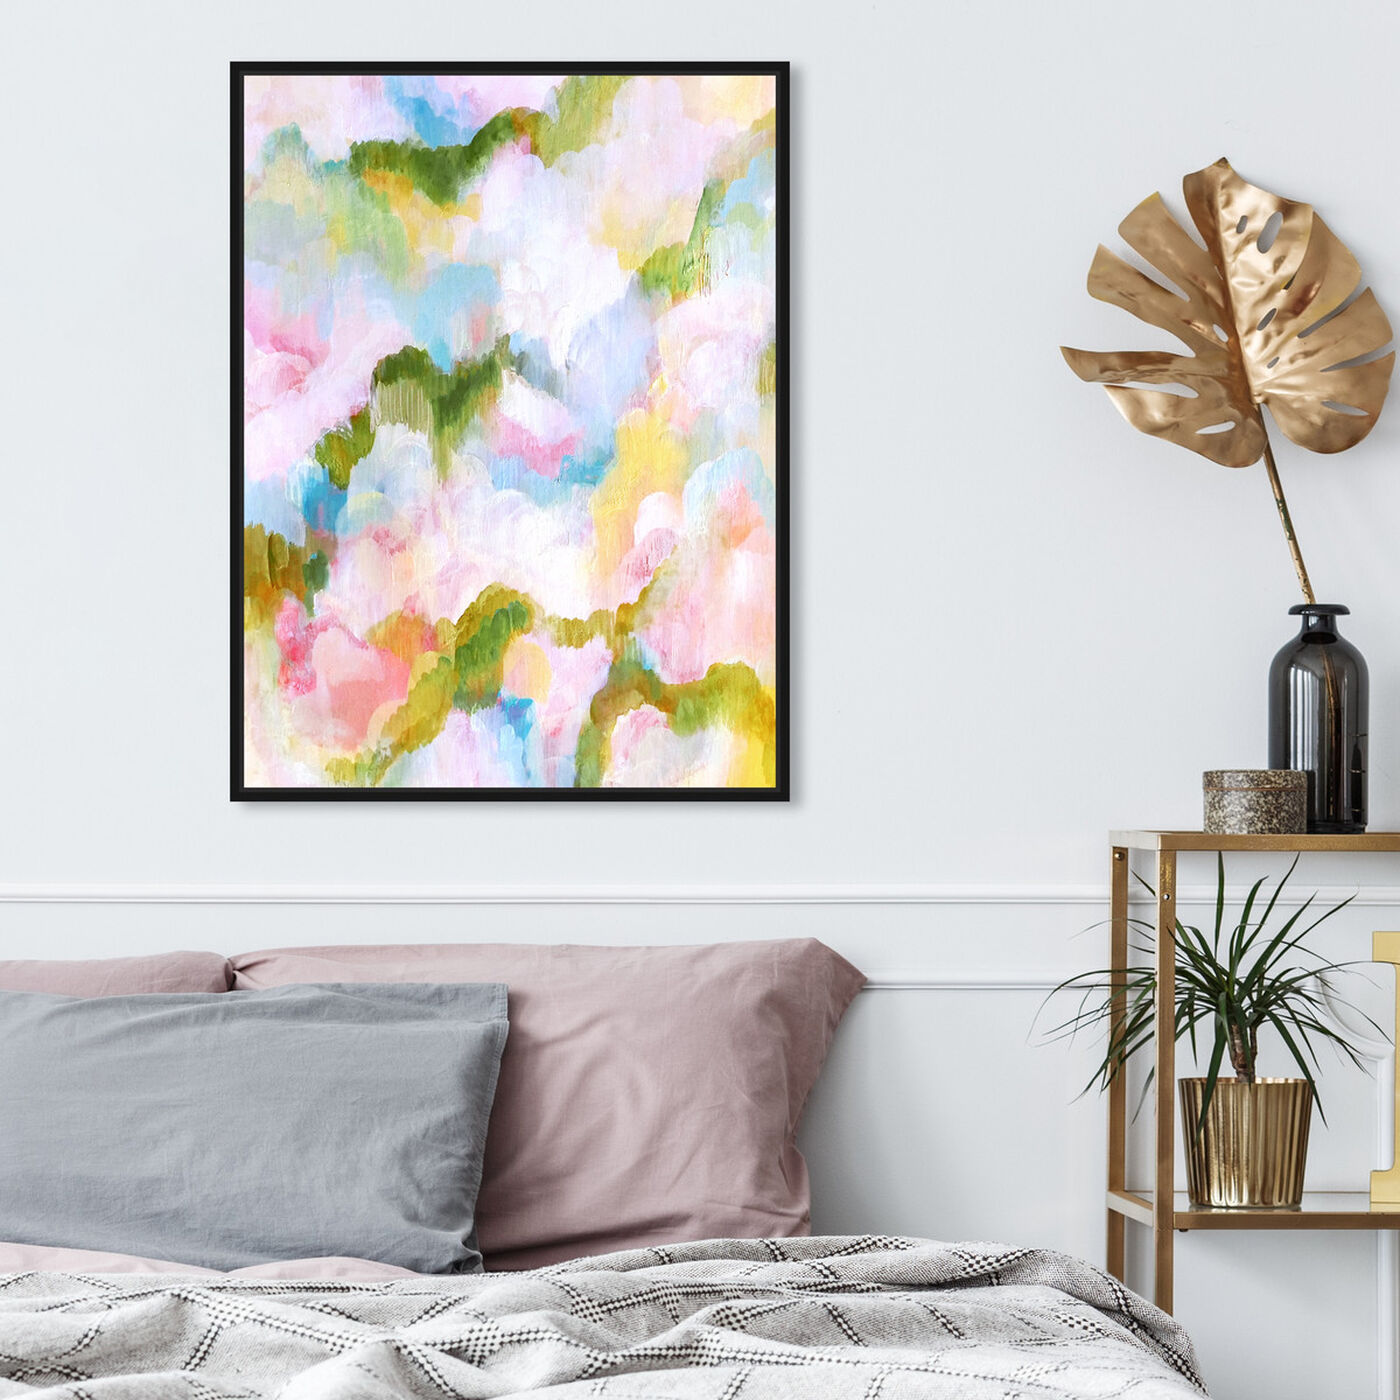 Hanging view of Garden of Hope V featuring abstract and paint art.